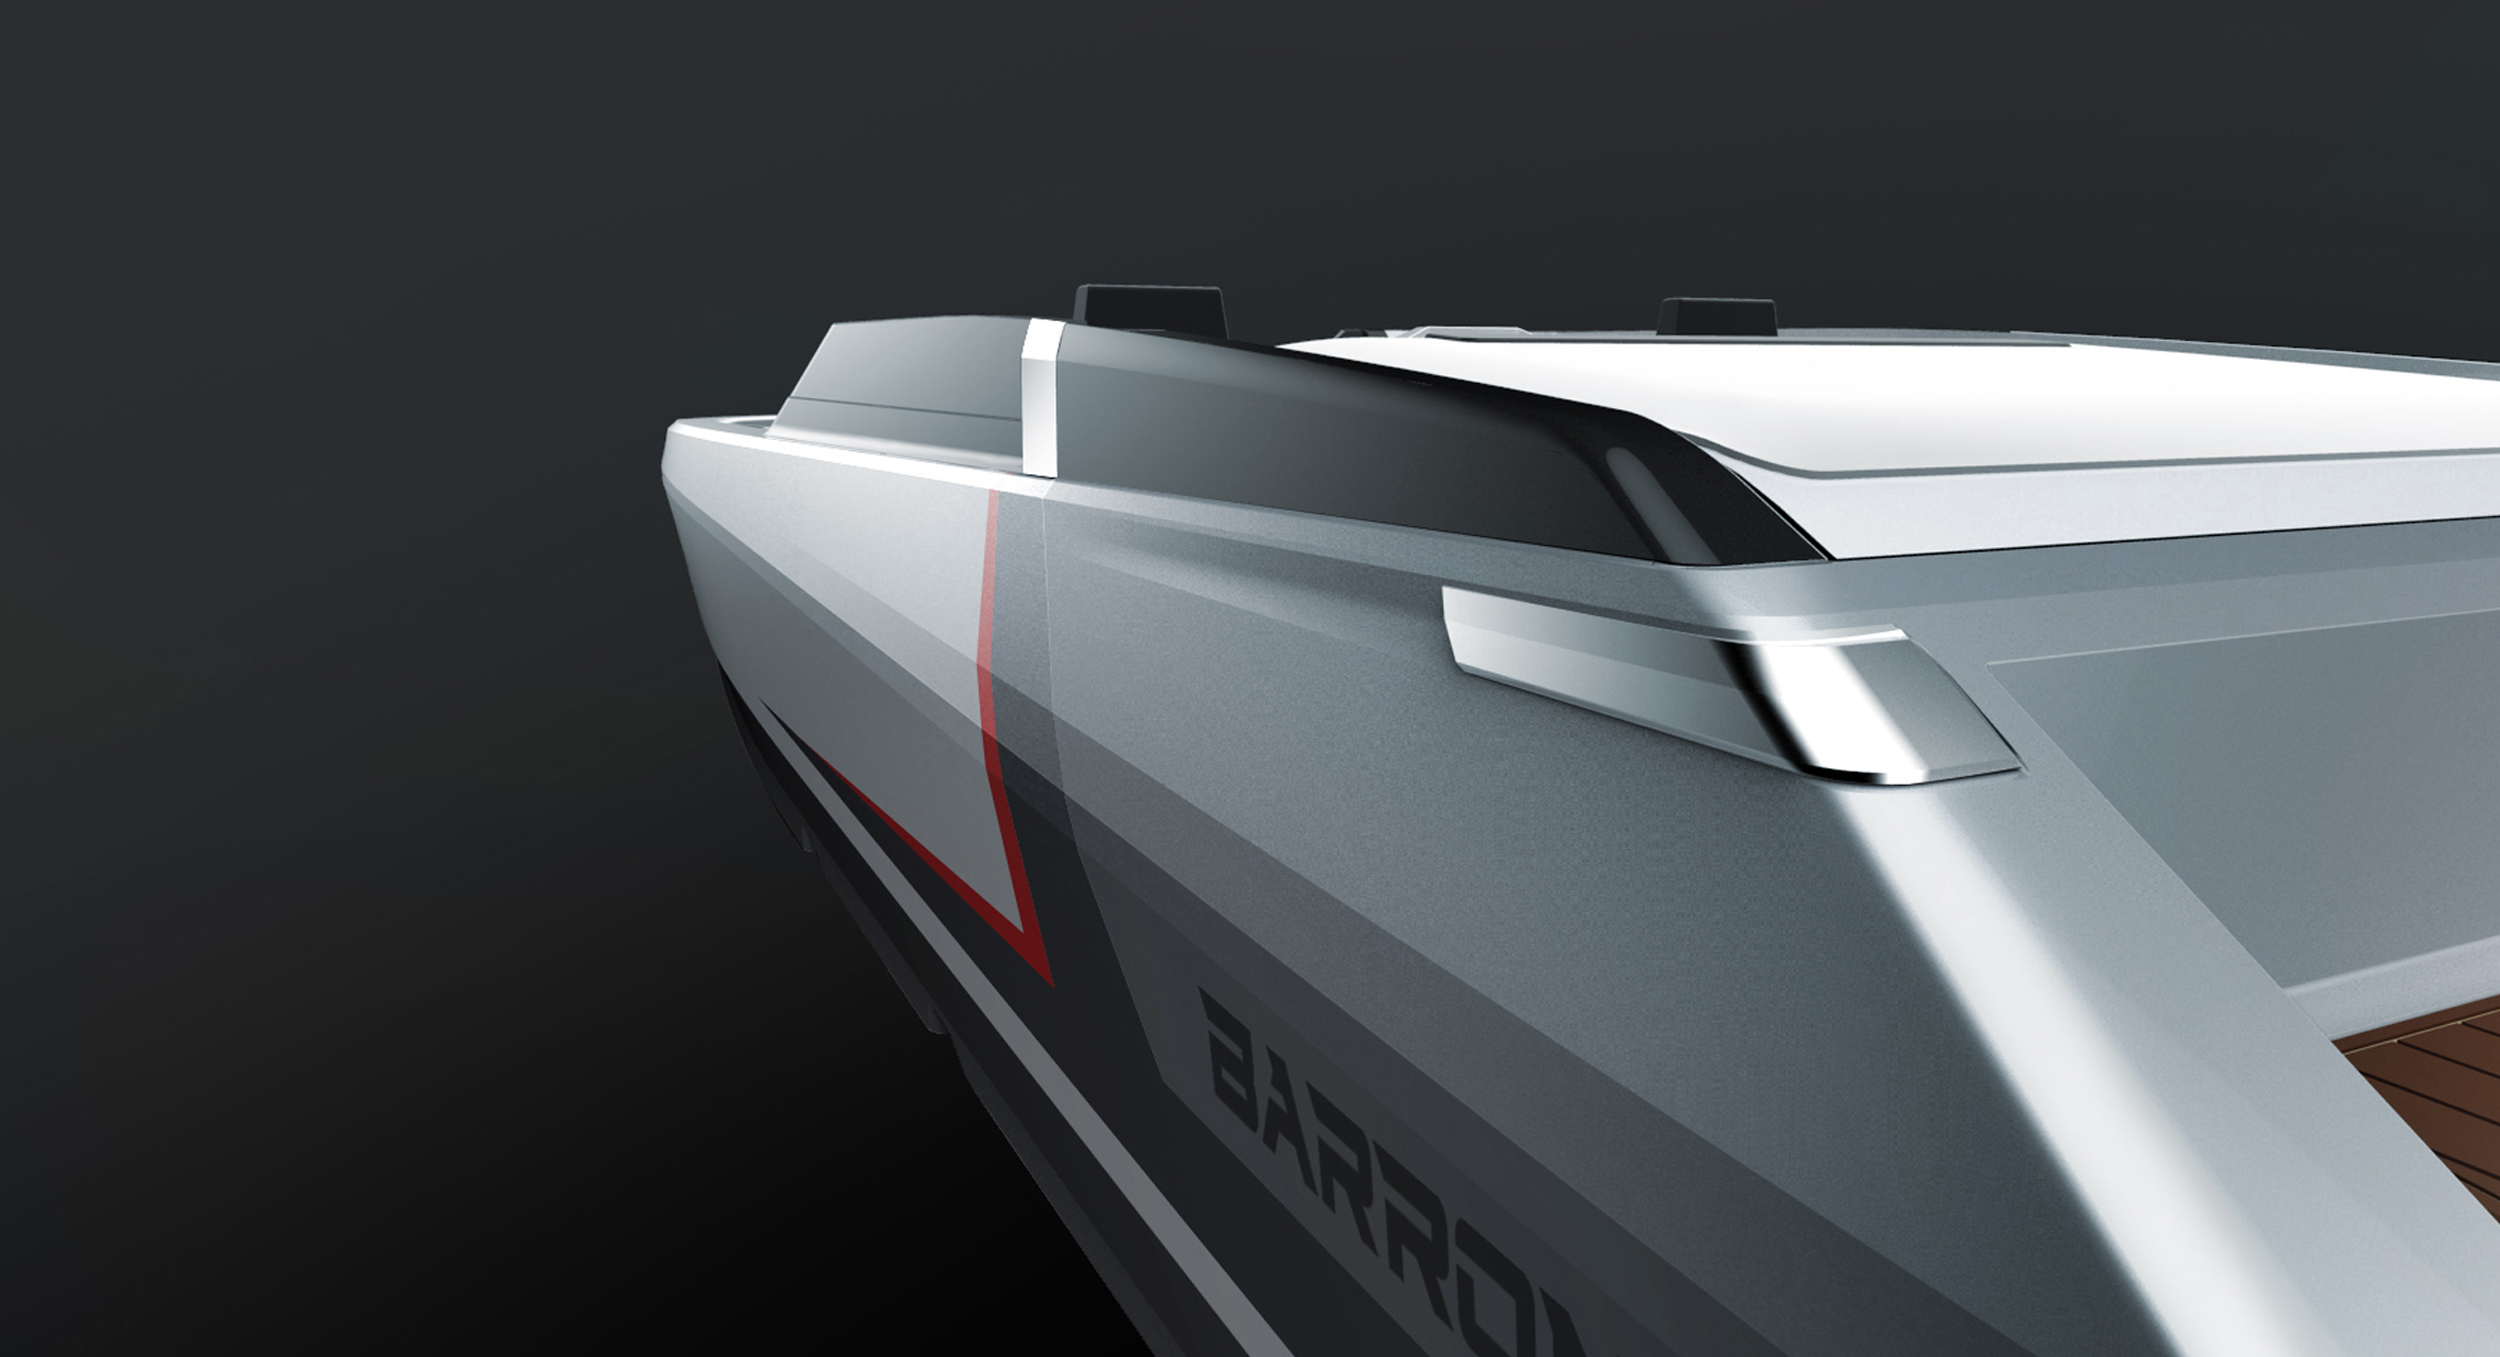 Render_Barron+290+Rear+Quarter_3918+.jpg